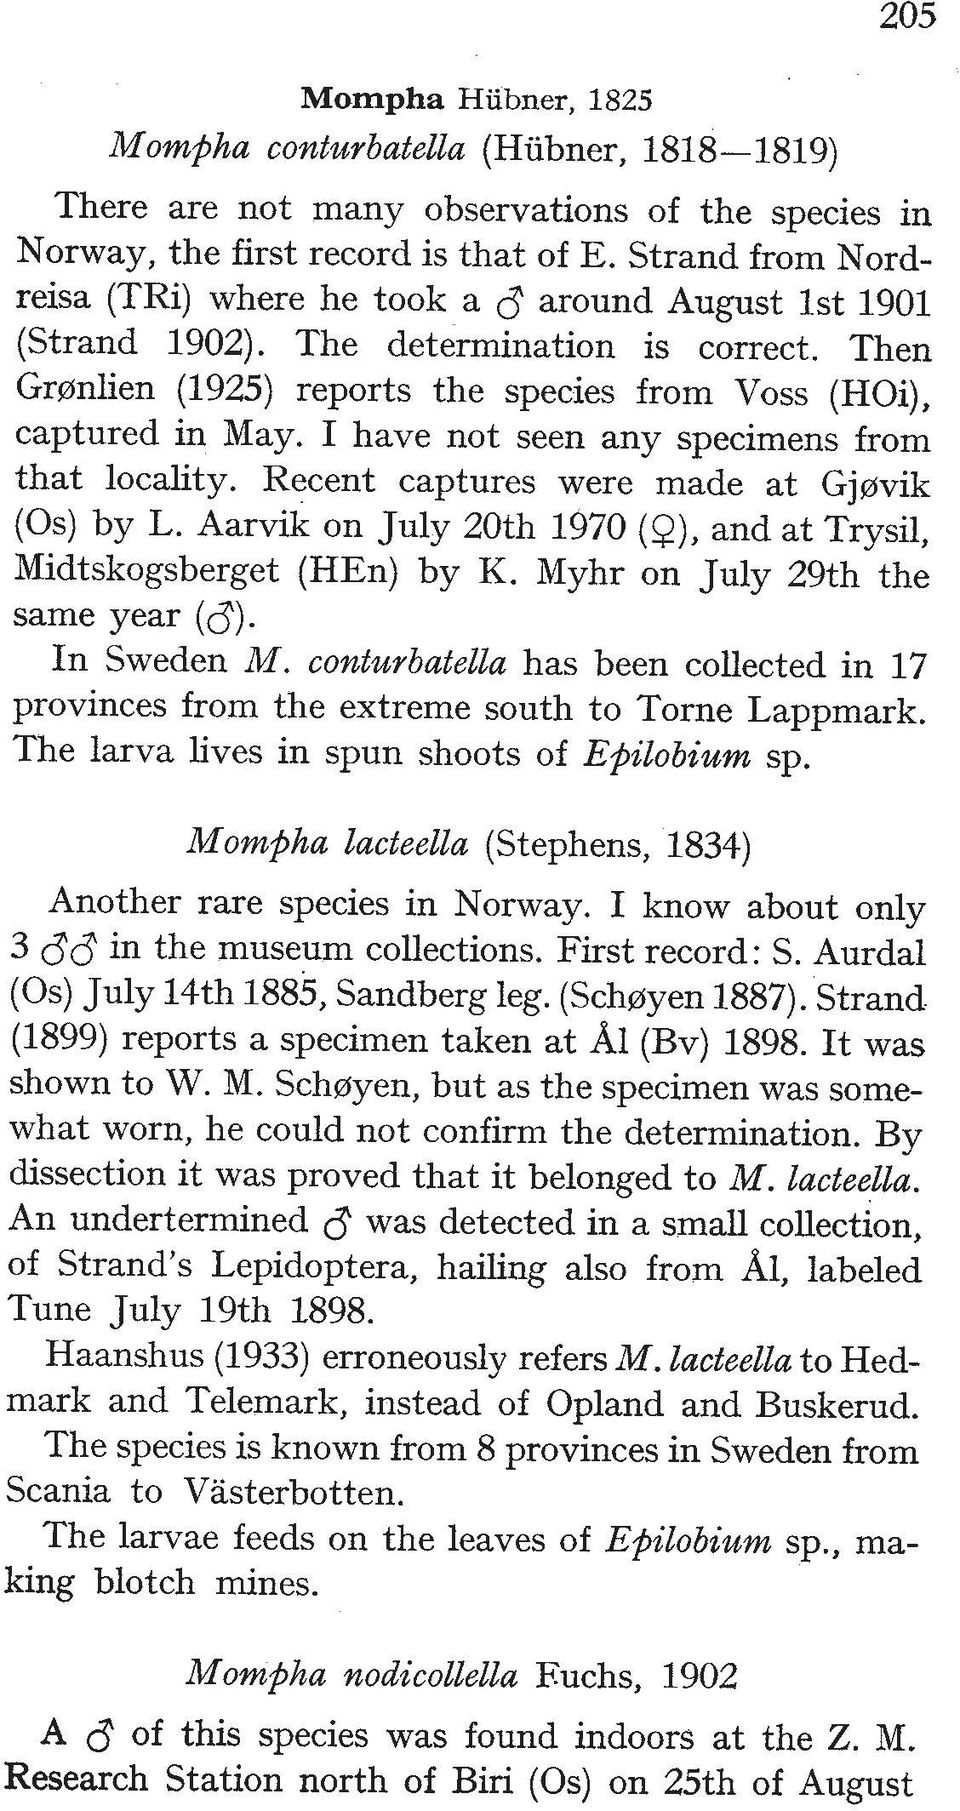 I have not seen any specimens from that locality. Recent captures were made at Gj~vik (0s) by L. Aarvik on July 20th 1970 (Q), and at Trysil, Midtskogsberget (HEn) by K.